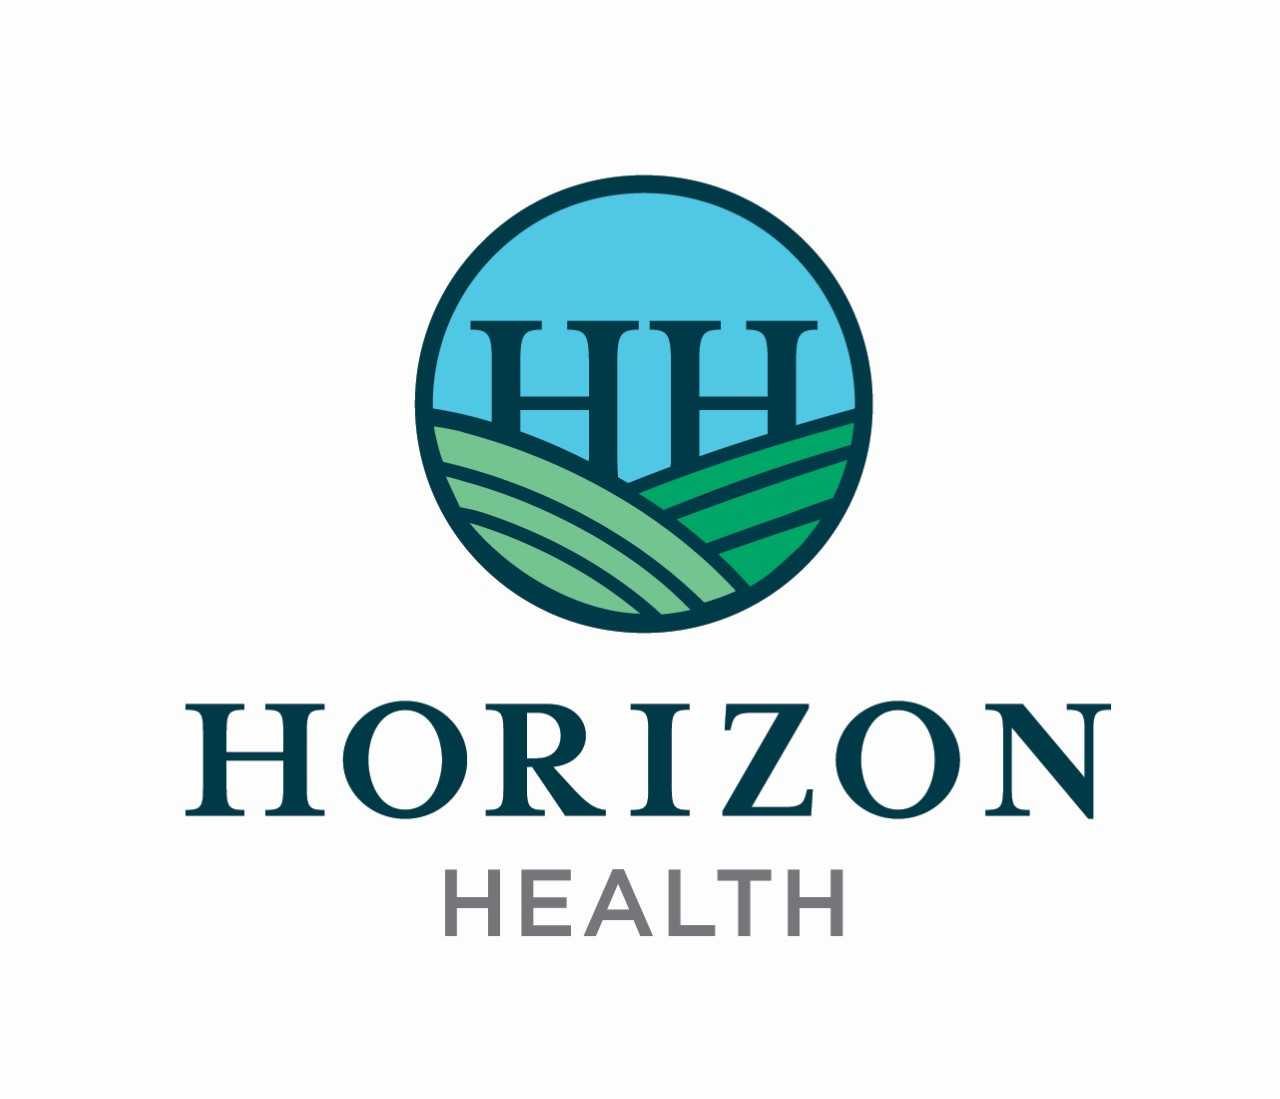 HORIZON HEALTH_1554241520847.jpg.jpg